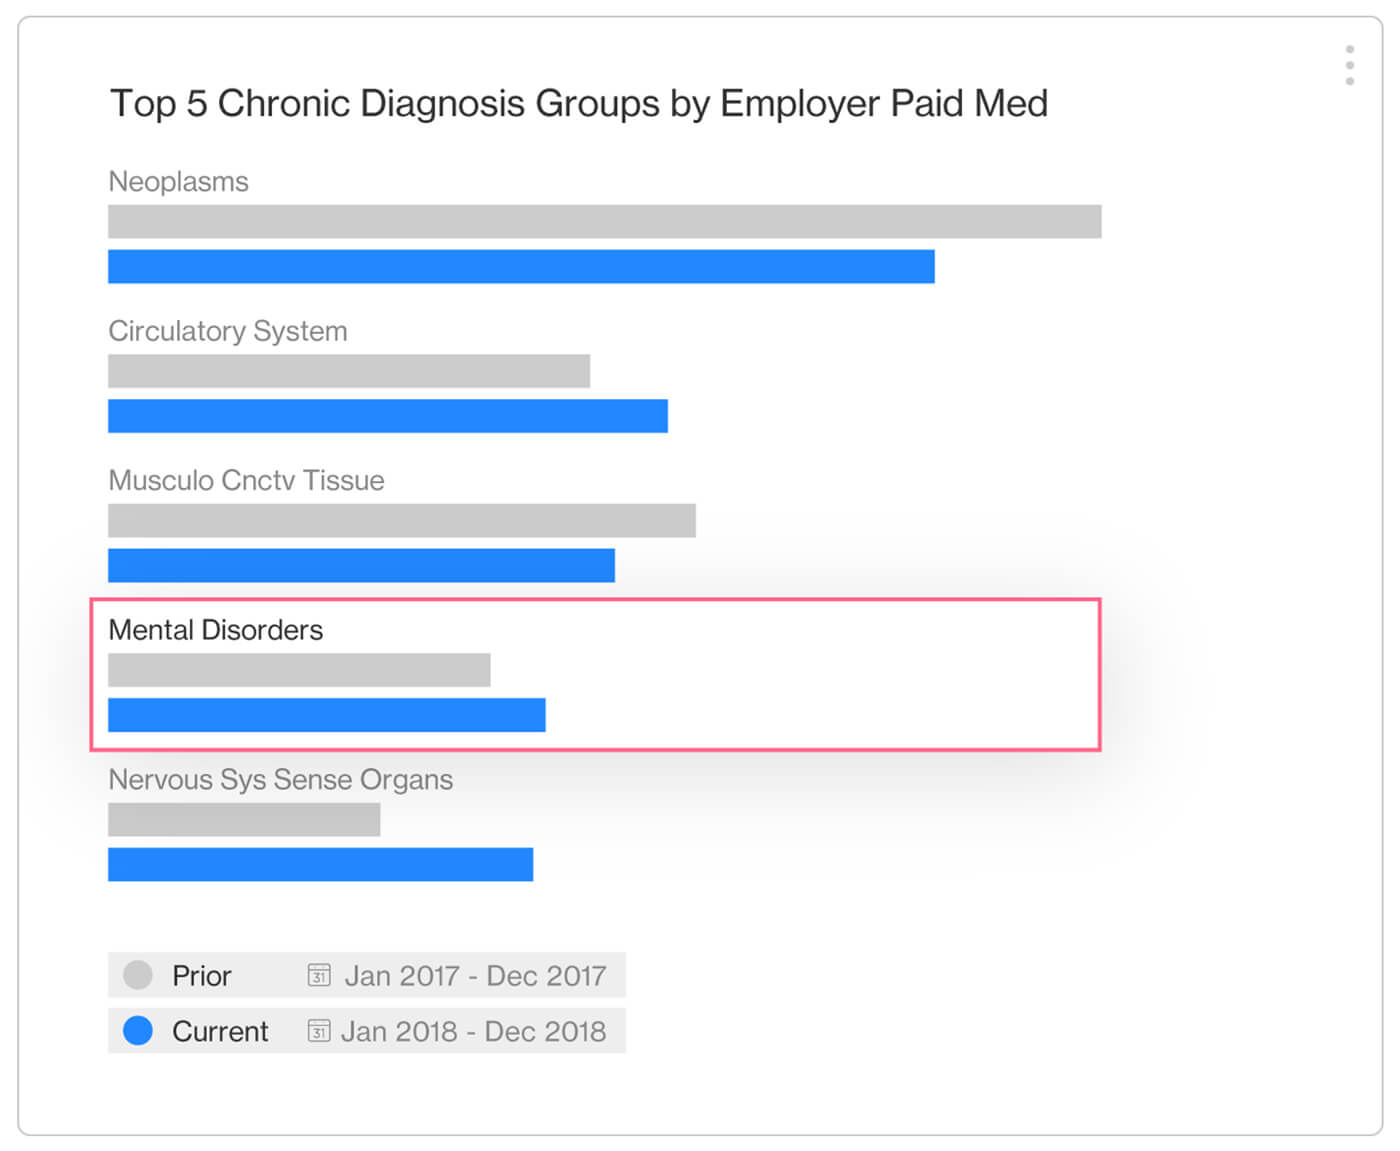 Top 5 chronic diagnosis groups by employer paid med